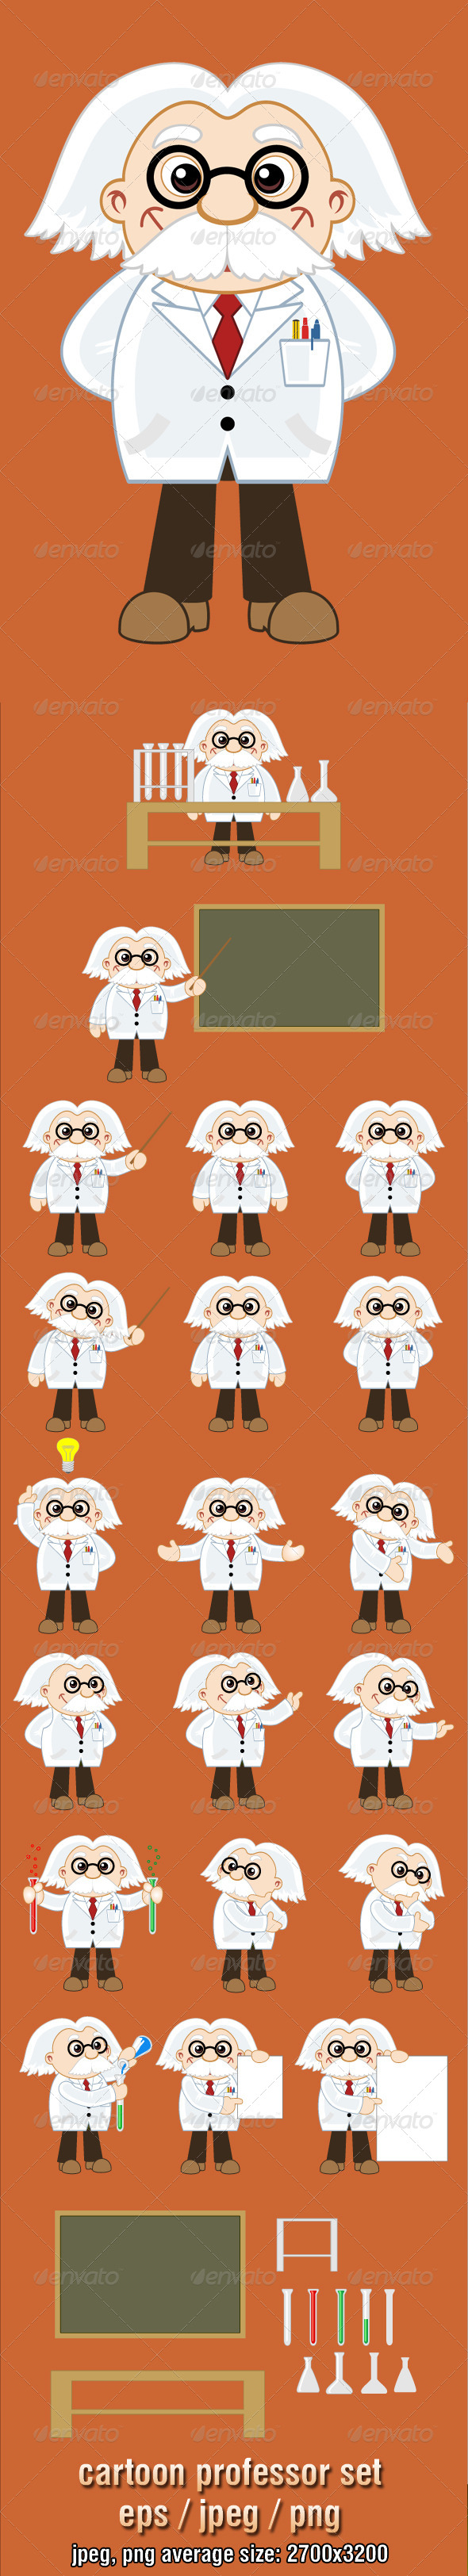 Professor Cartoon Character Set